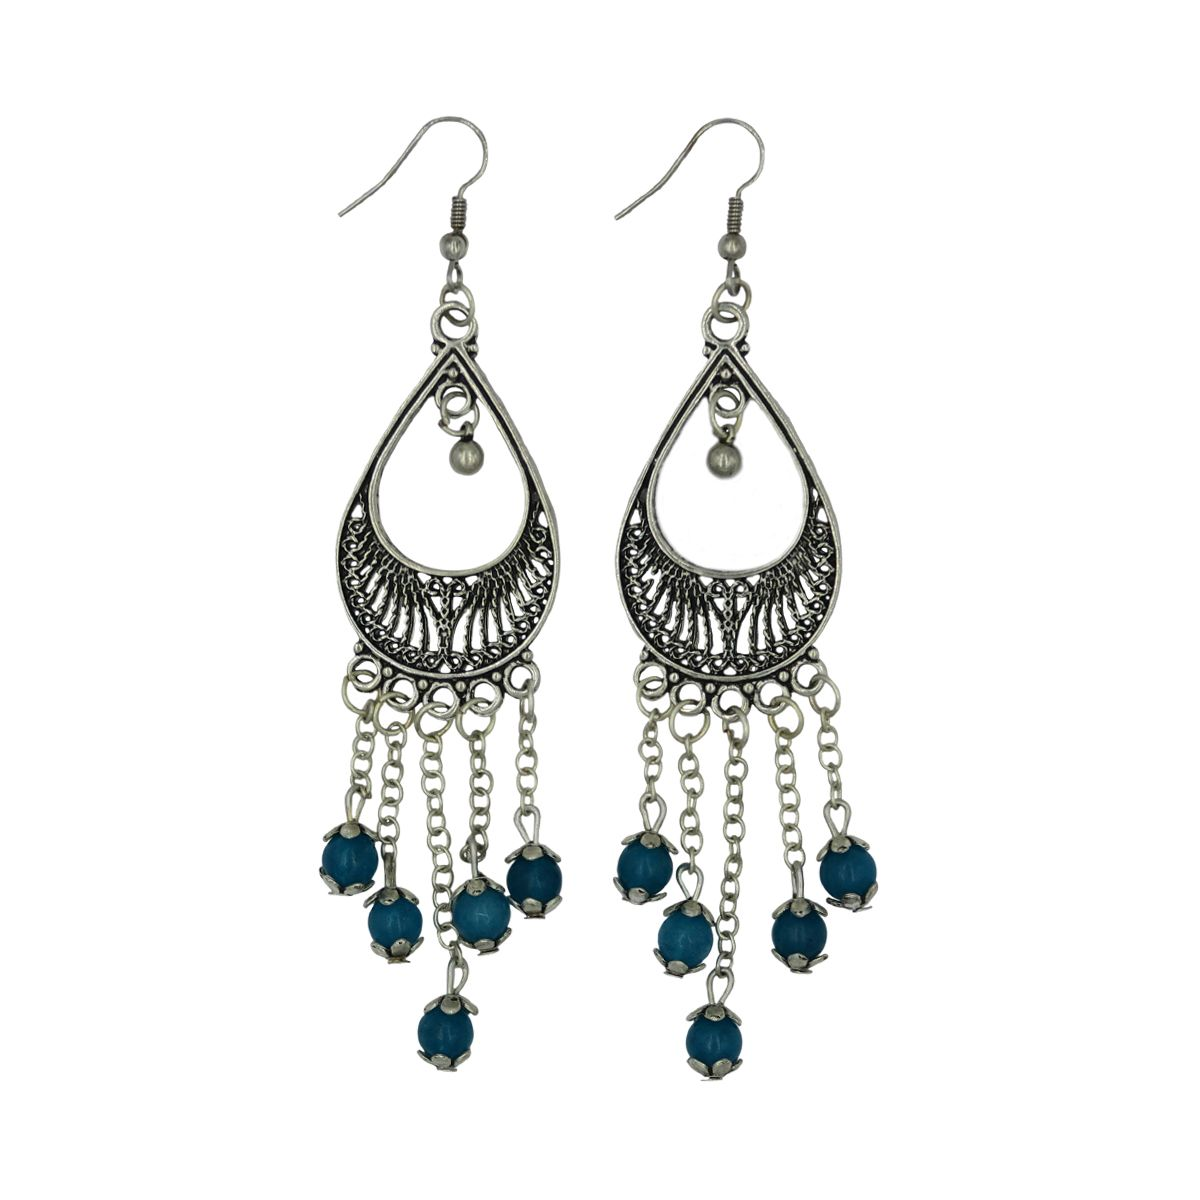 087c5881a Drop Hanging Earring 0681144. Made in Bali Jewelry